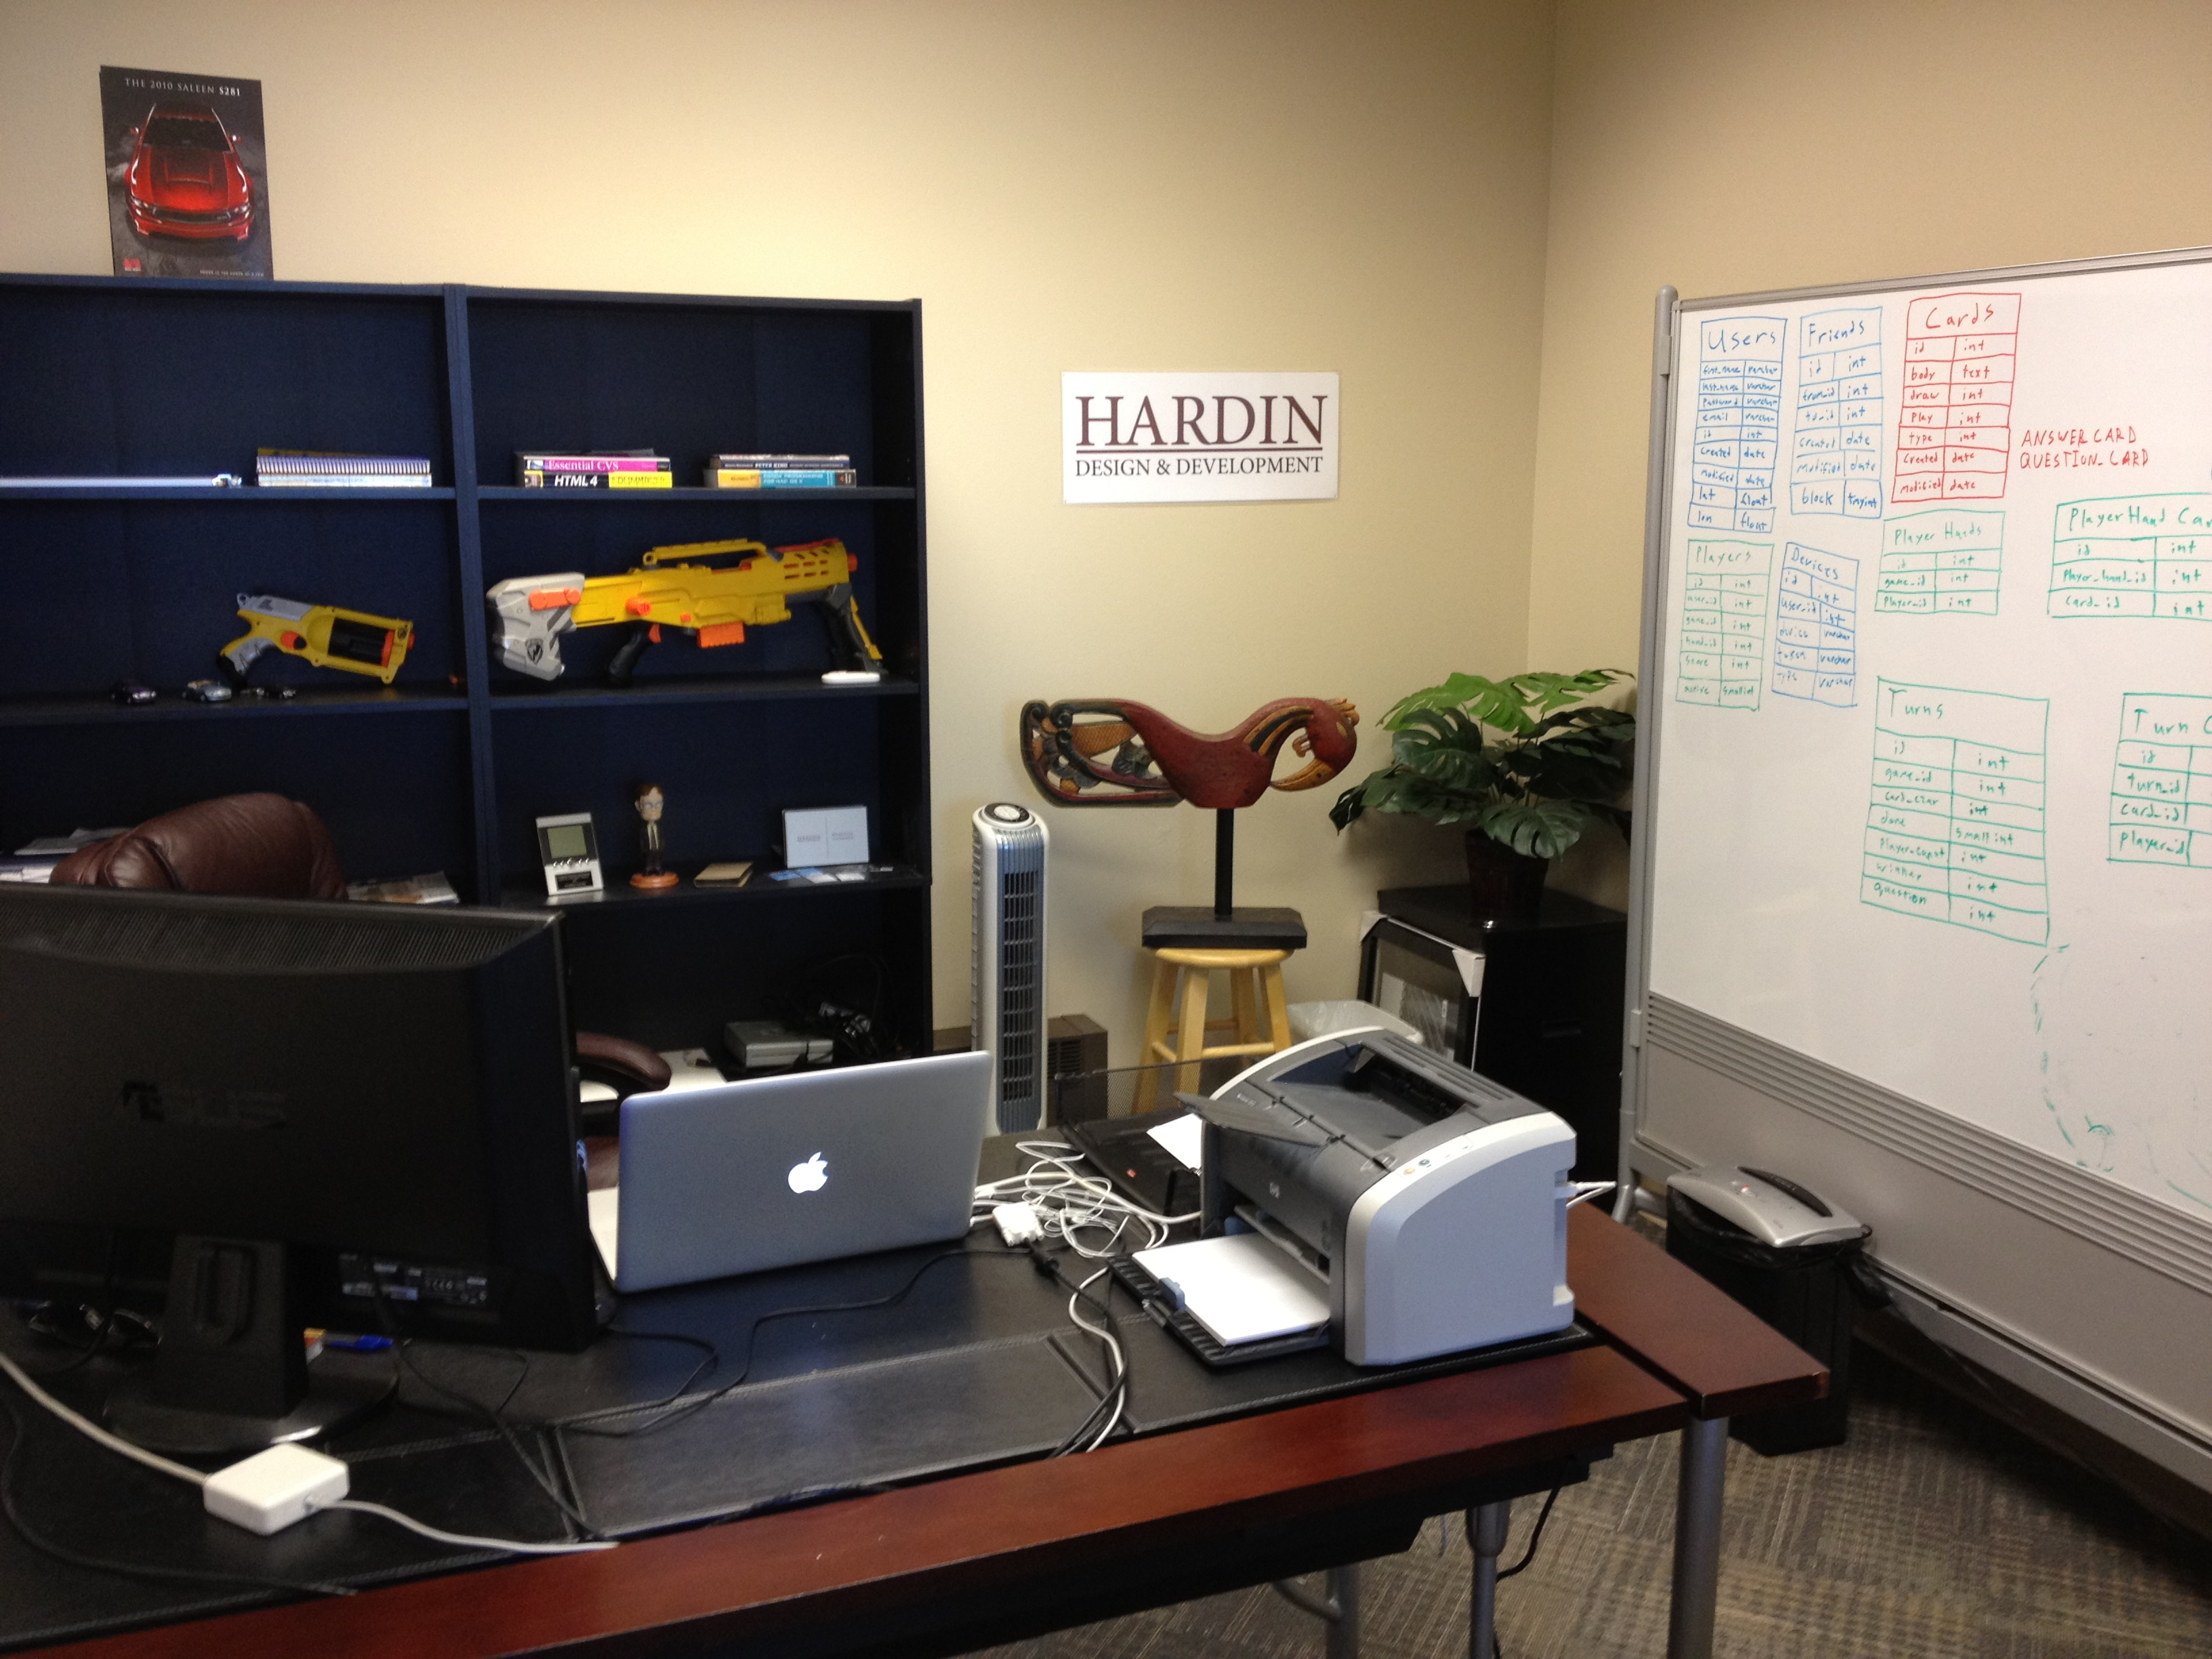 Finally decorated my office hardin design development How to decorate your office